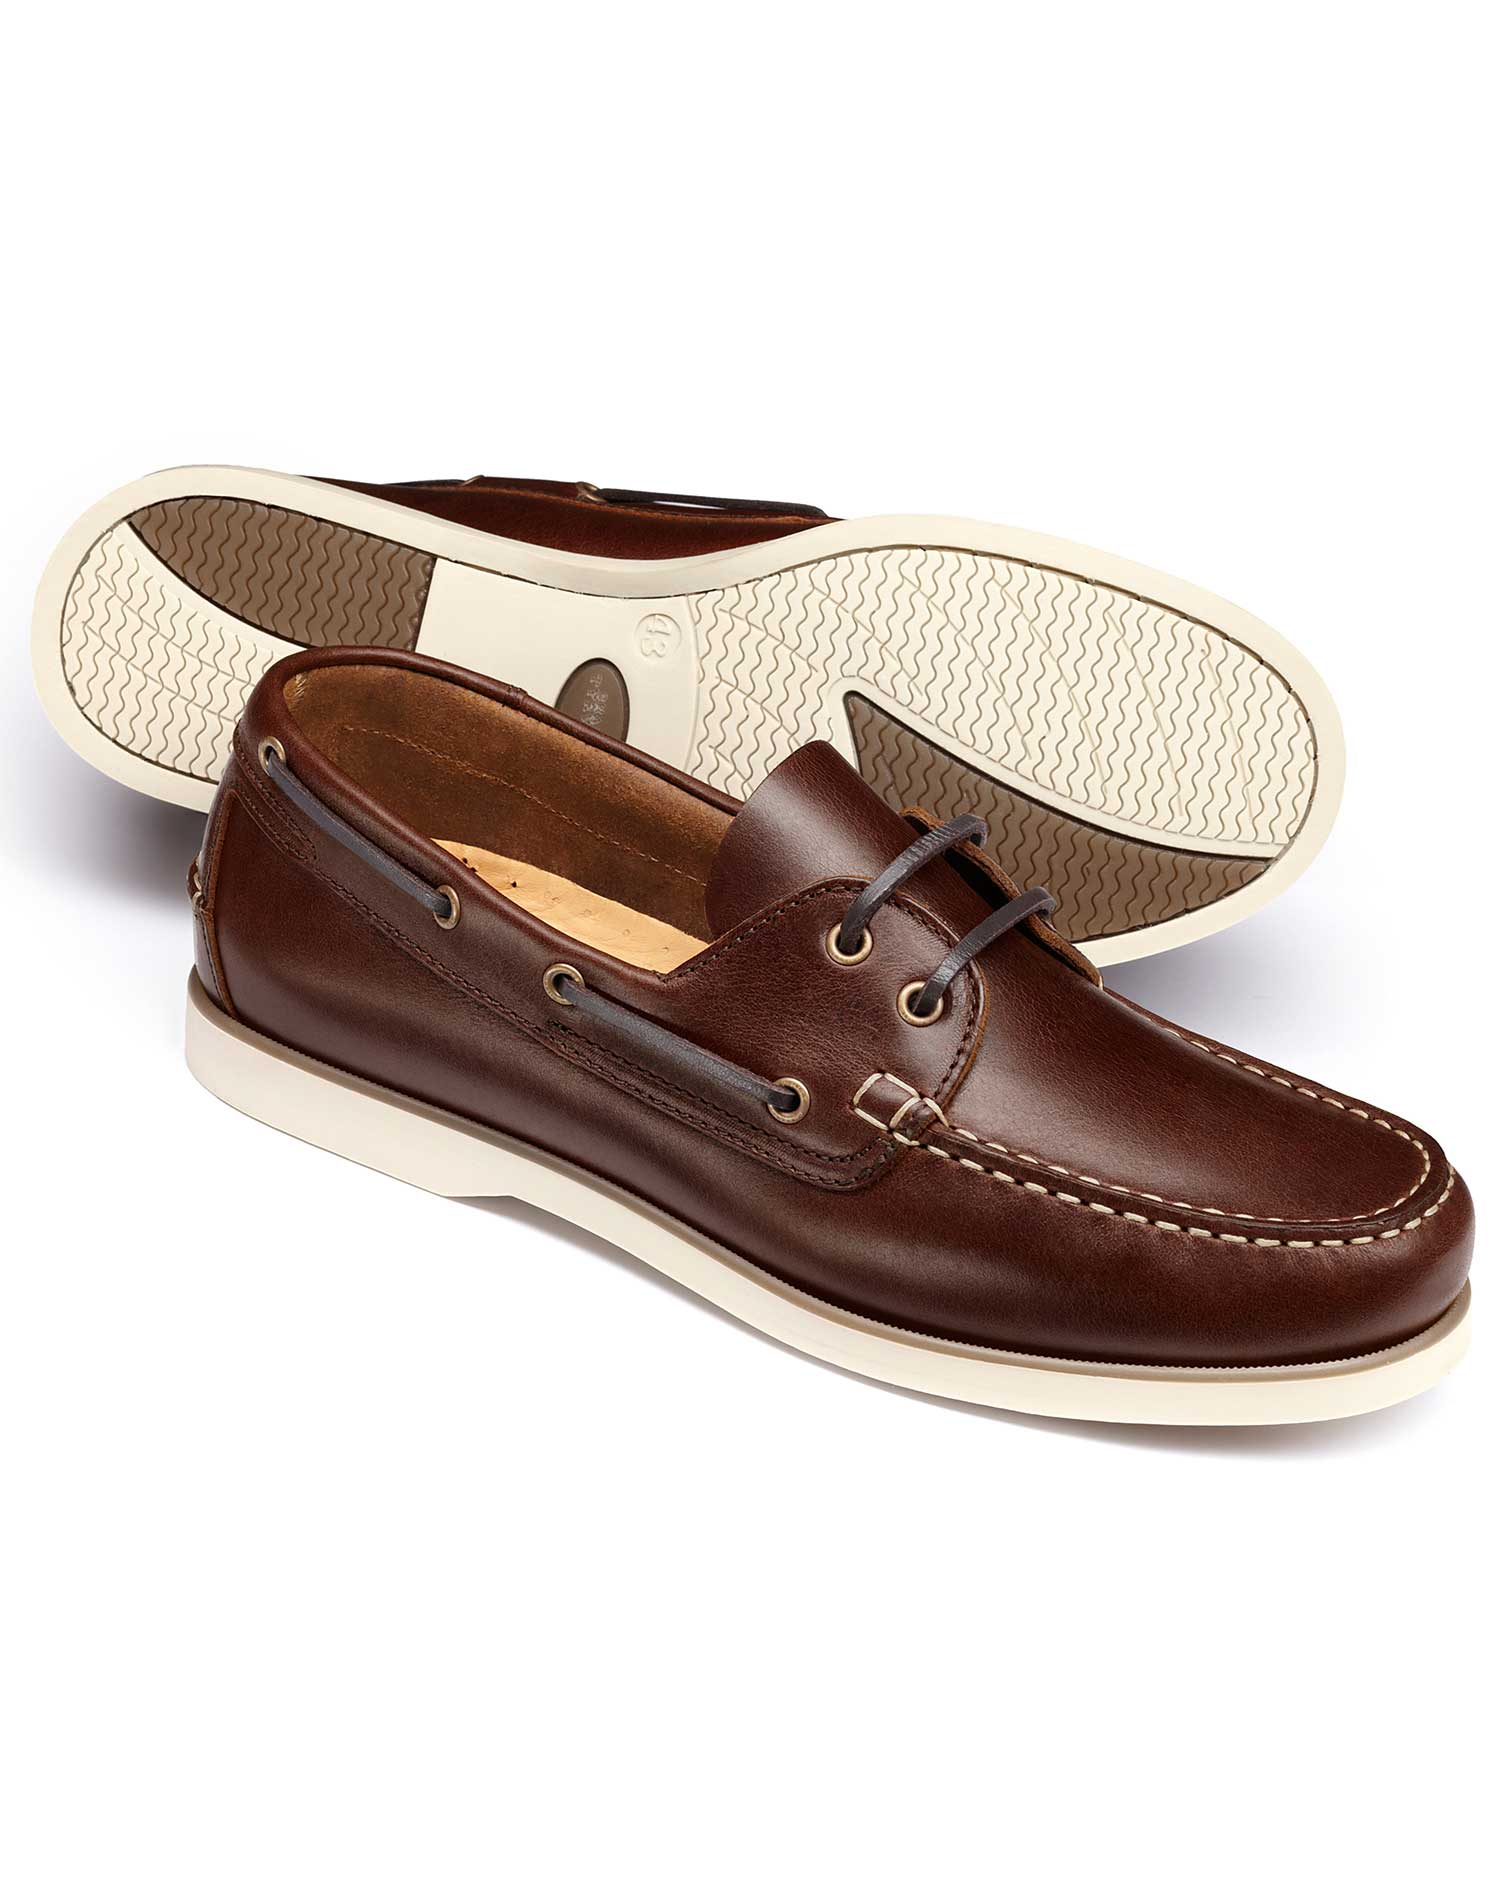 Brown Boat Shoe Size 12 R by Charles Tyrwhitt